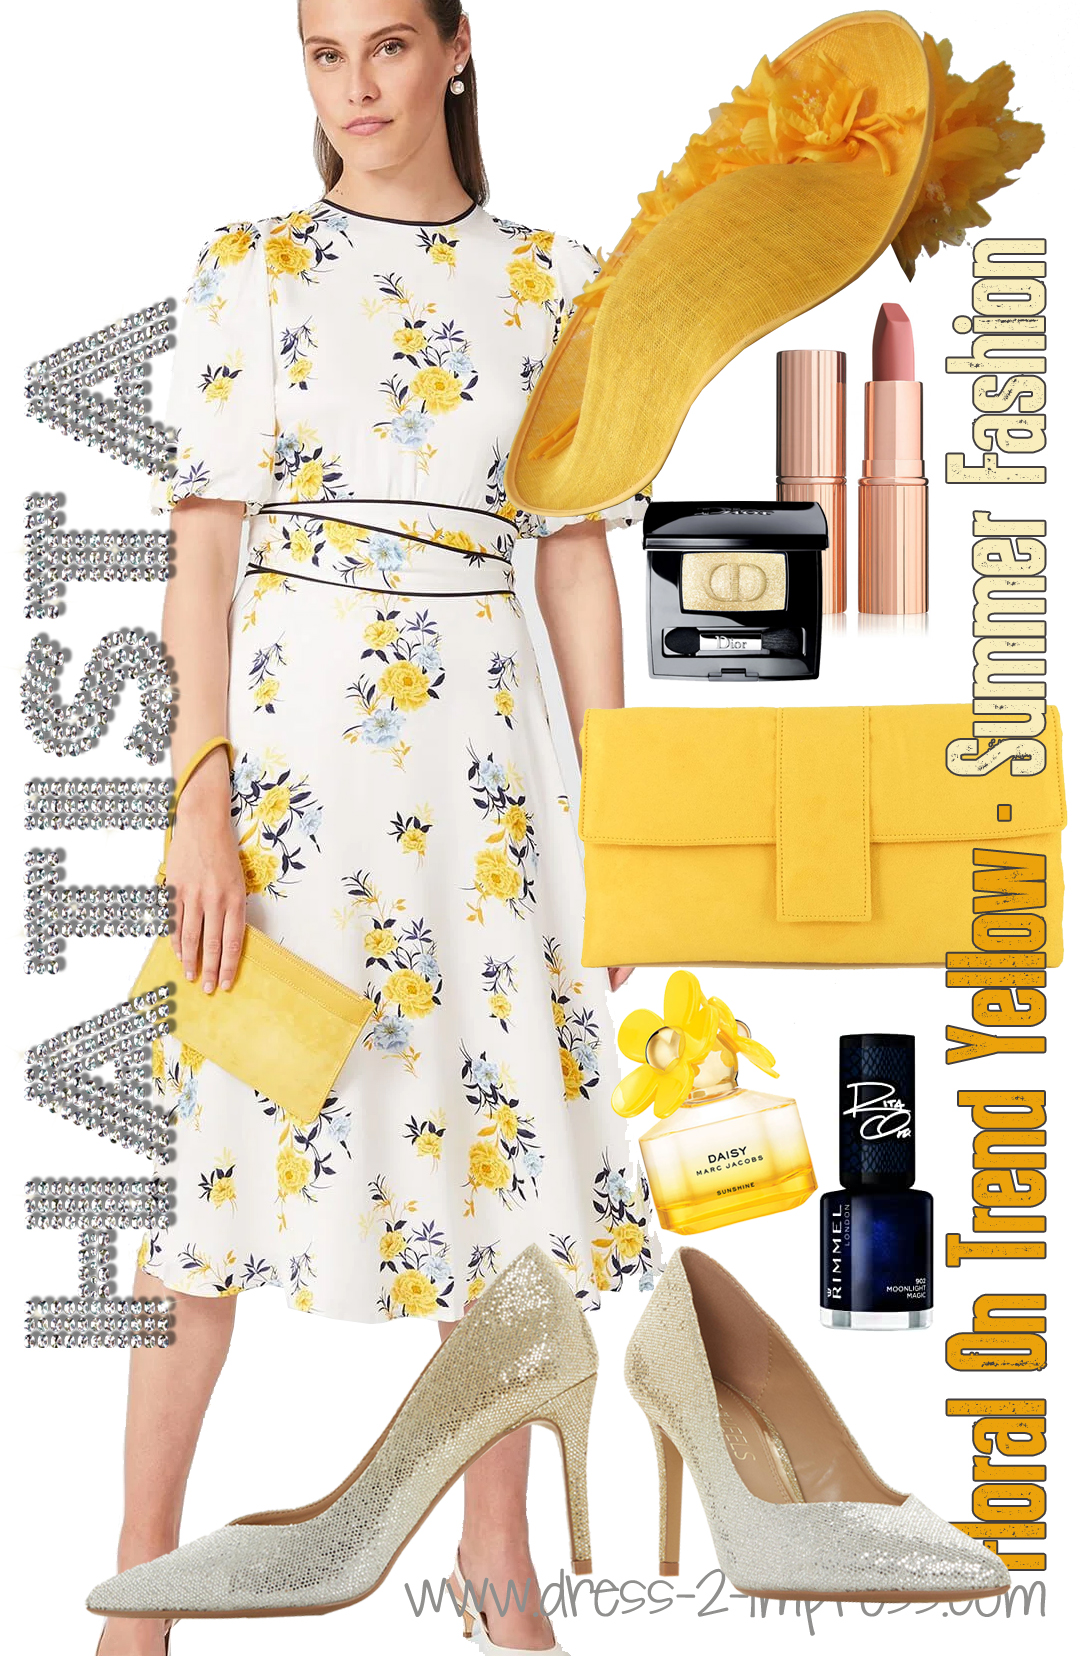 Yellow Royal Ascot outfit. How to Wear Yellow. On trend colours for Summer. Outfit ideas with Yellow. What to wear for Royal Ascot. Summer Wedding outfit ideas. What to wear for to the Races.